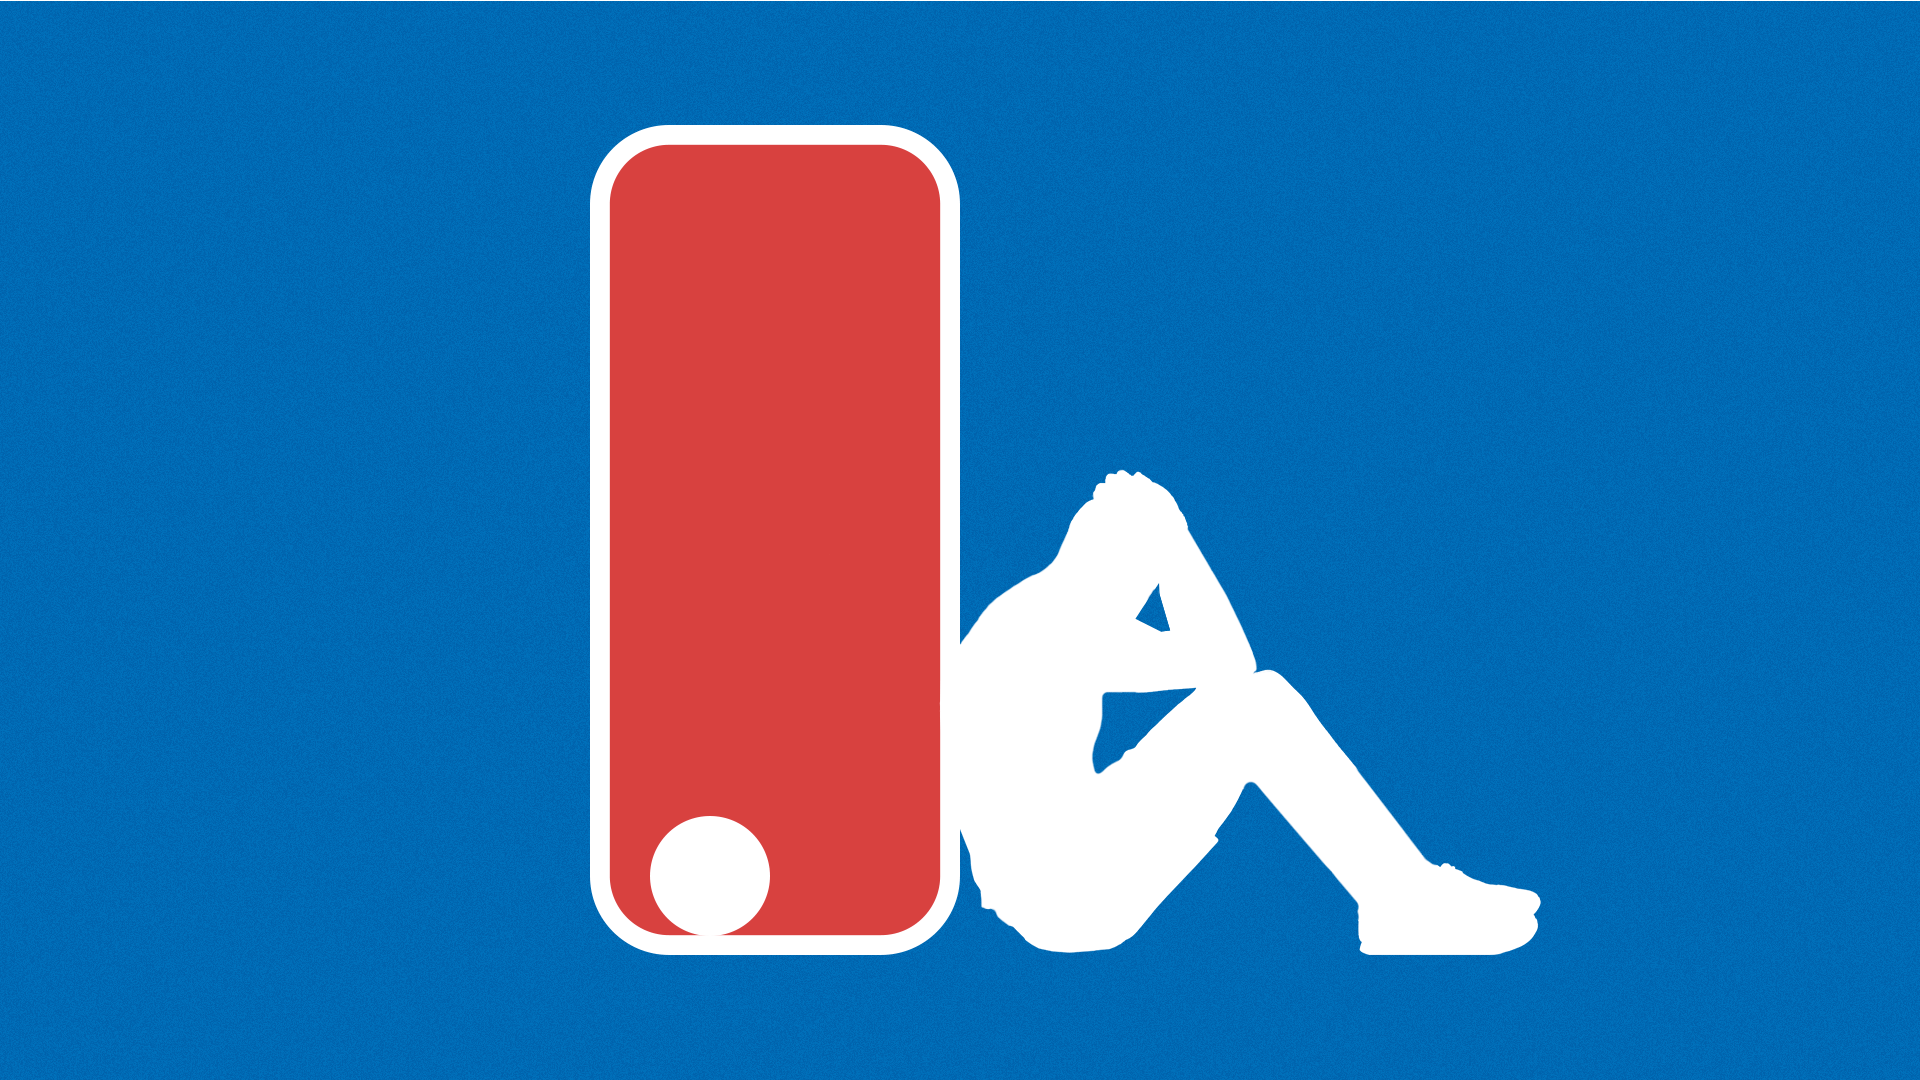 cd19ee2de55a Illustration of the NBA logo with the ball left abandoned and the player  sitting and leaning